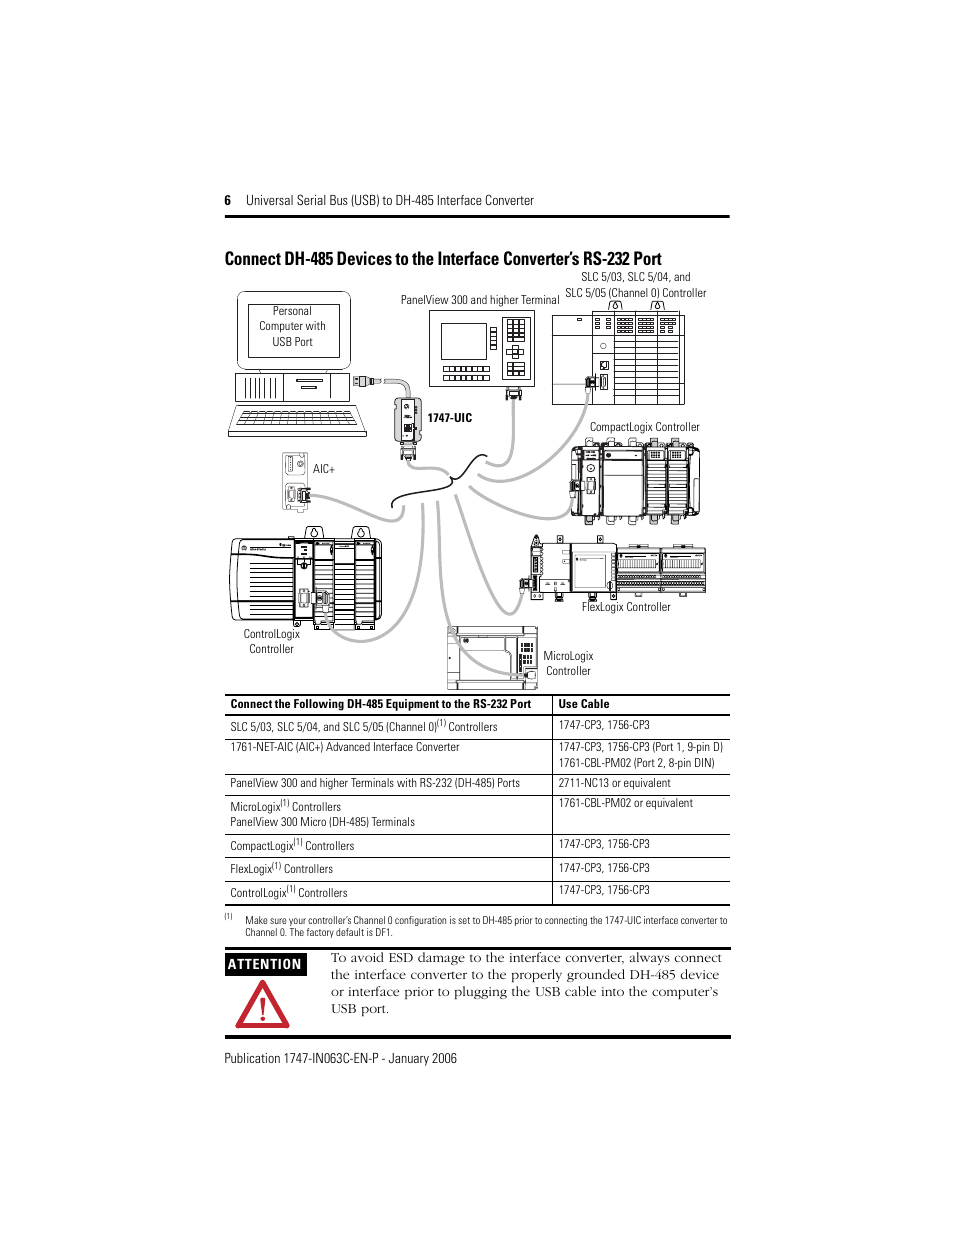 Rockwell Automation 1747-UIC Universal Serial Bus to DH